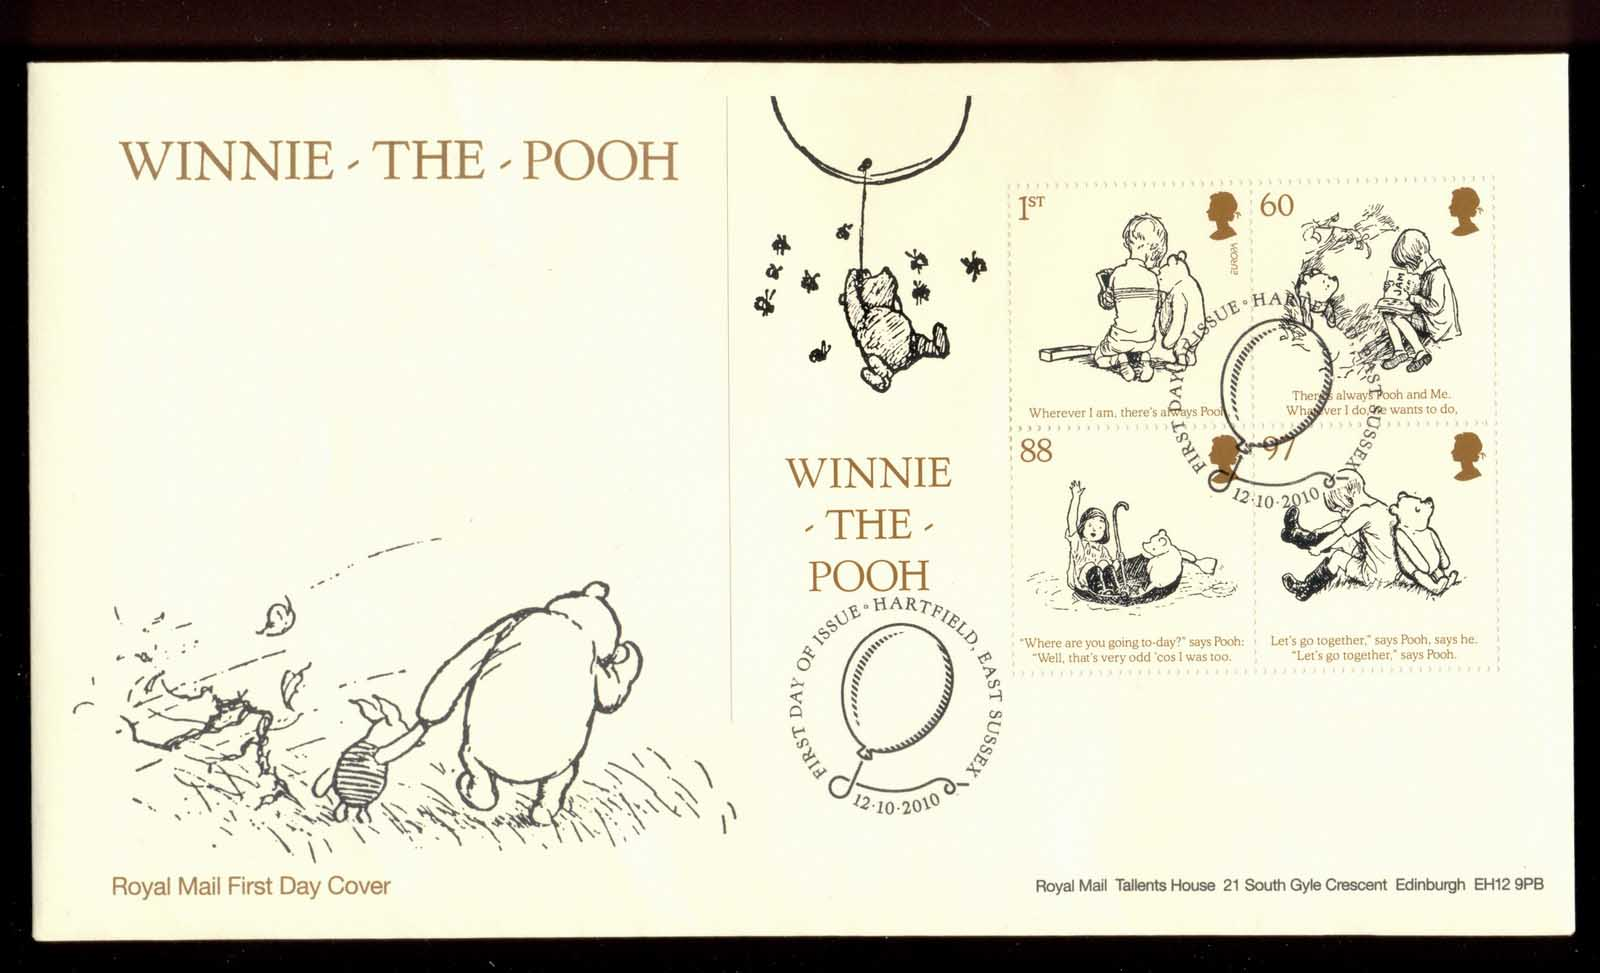 GB 2010 Europa Children's Books Winnie the Pooh MS FDC